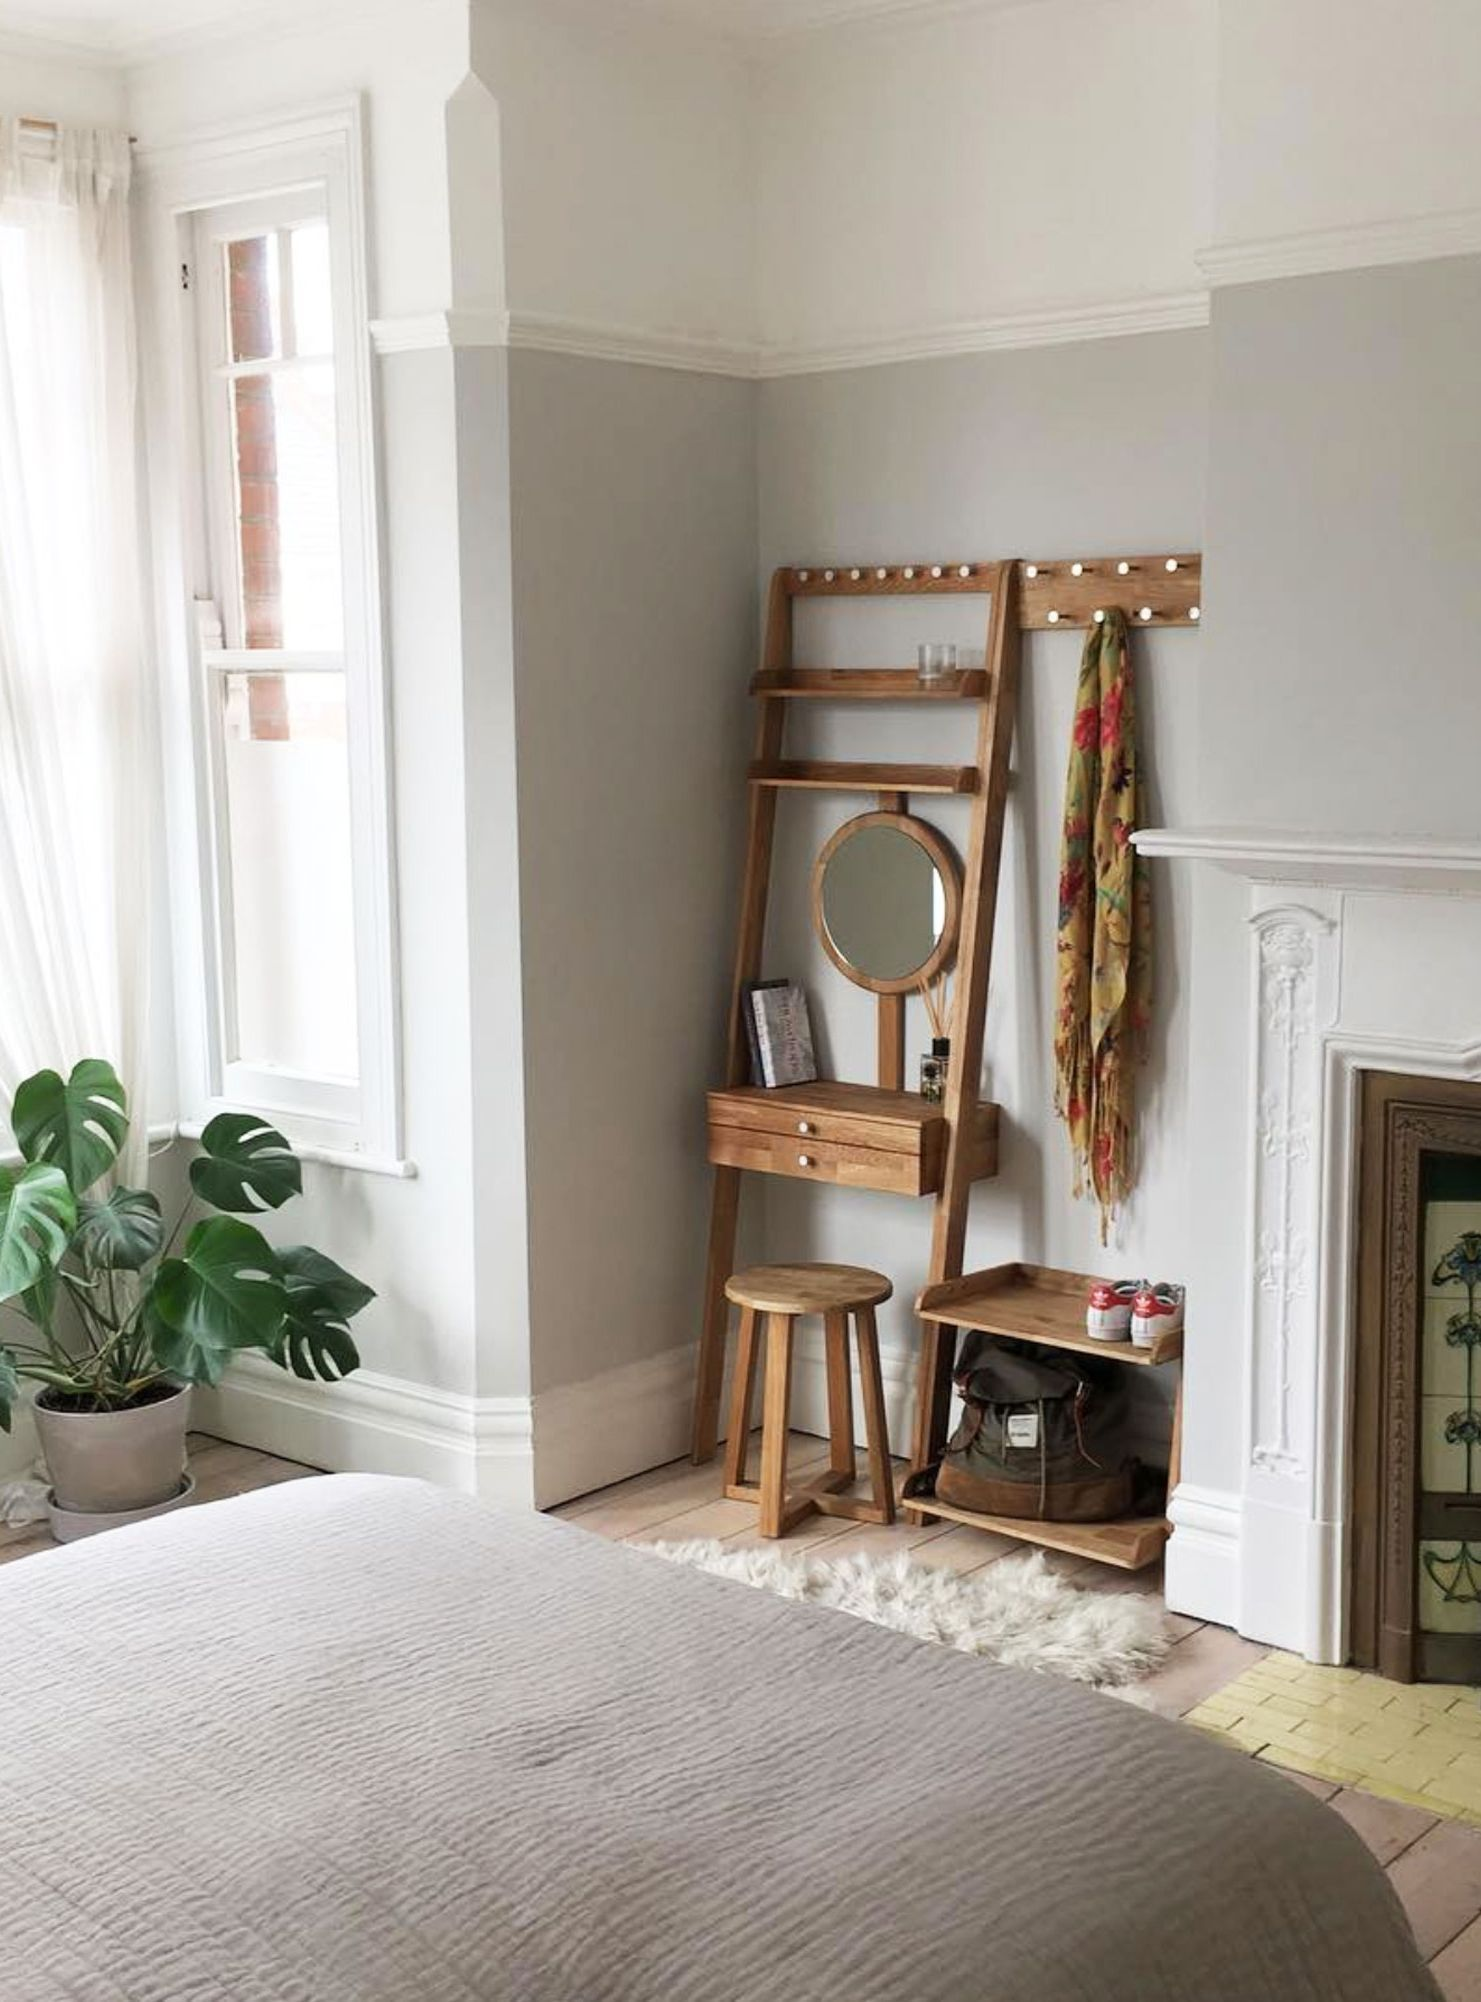 Where To Buy Furniture For Small Spaces+#refinery29uk #DIYHomeDecorSmallSpaces